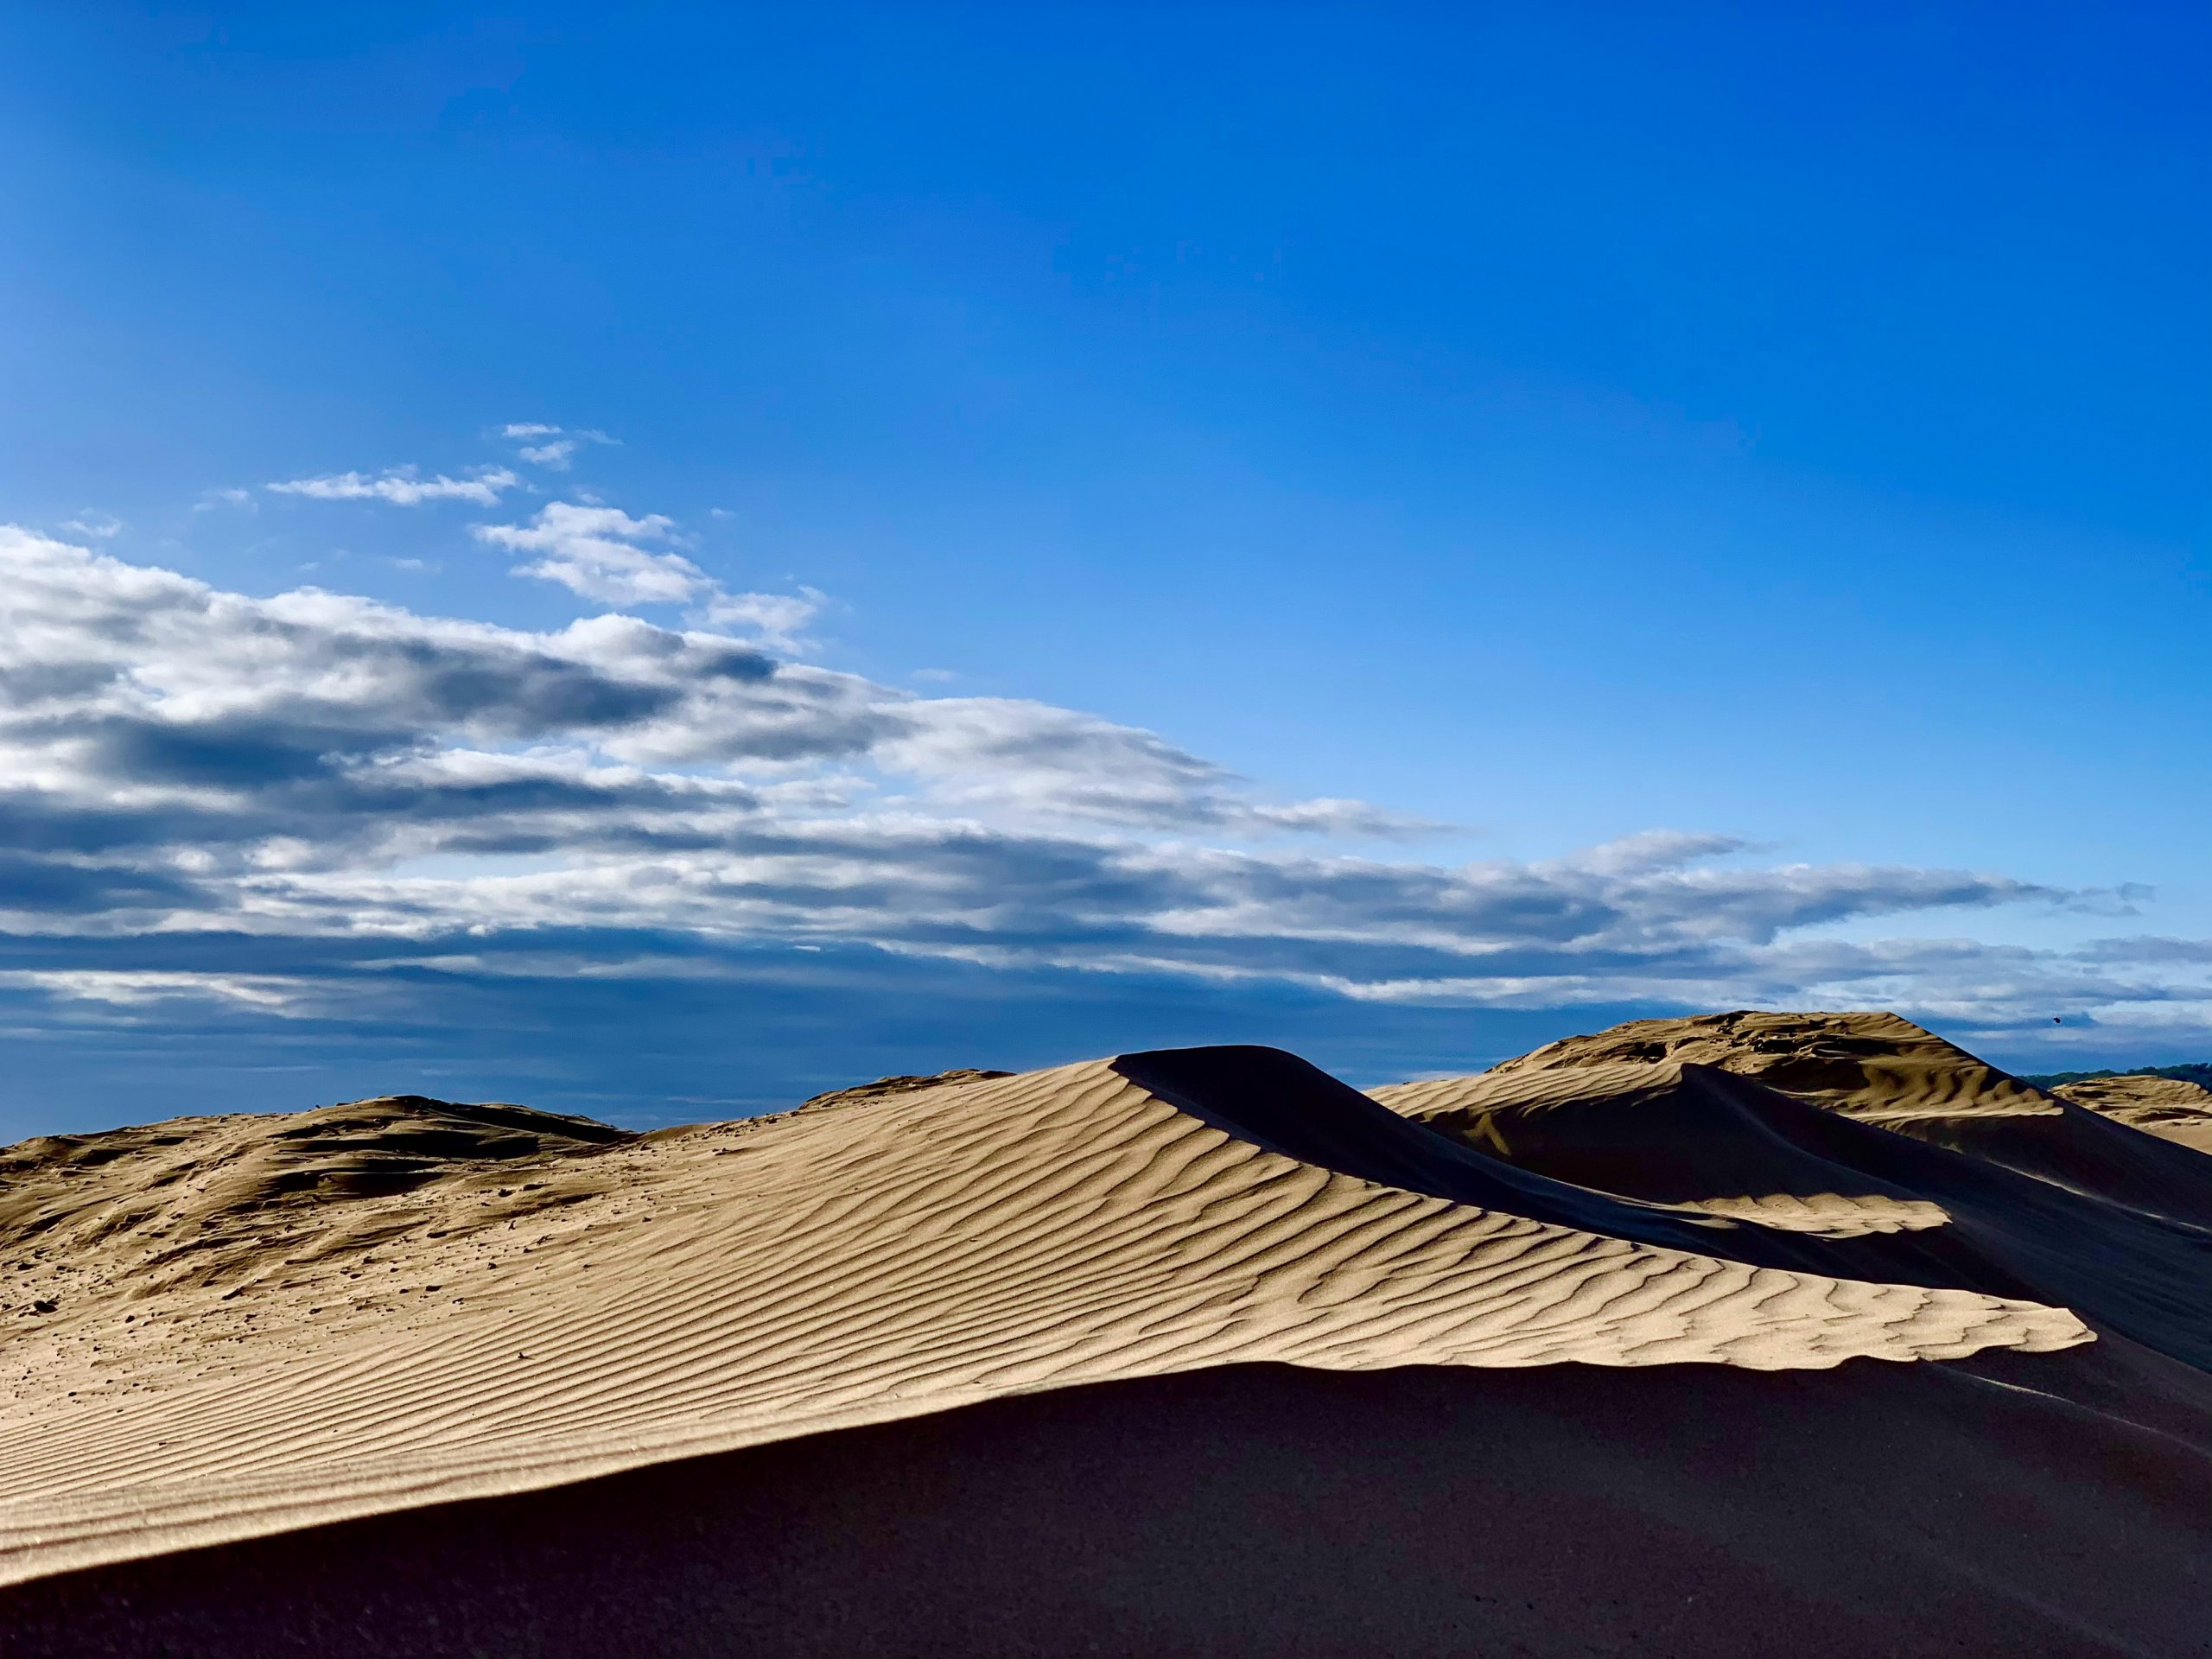 large sand dunes with sea in background and blue sky